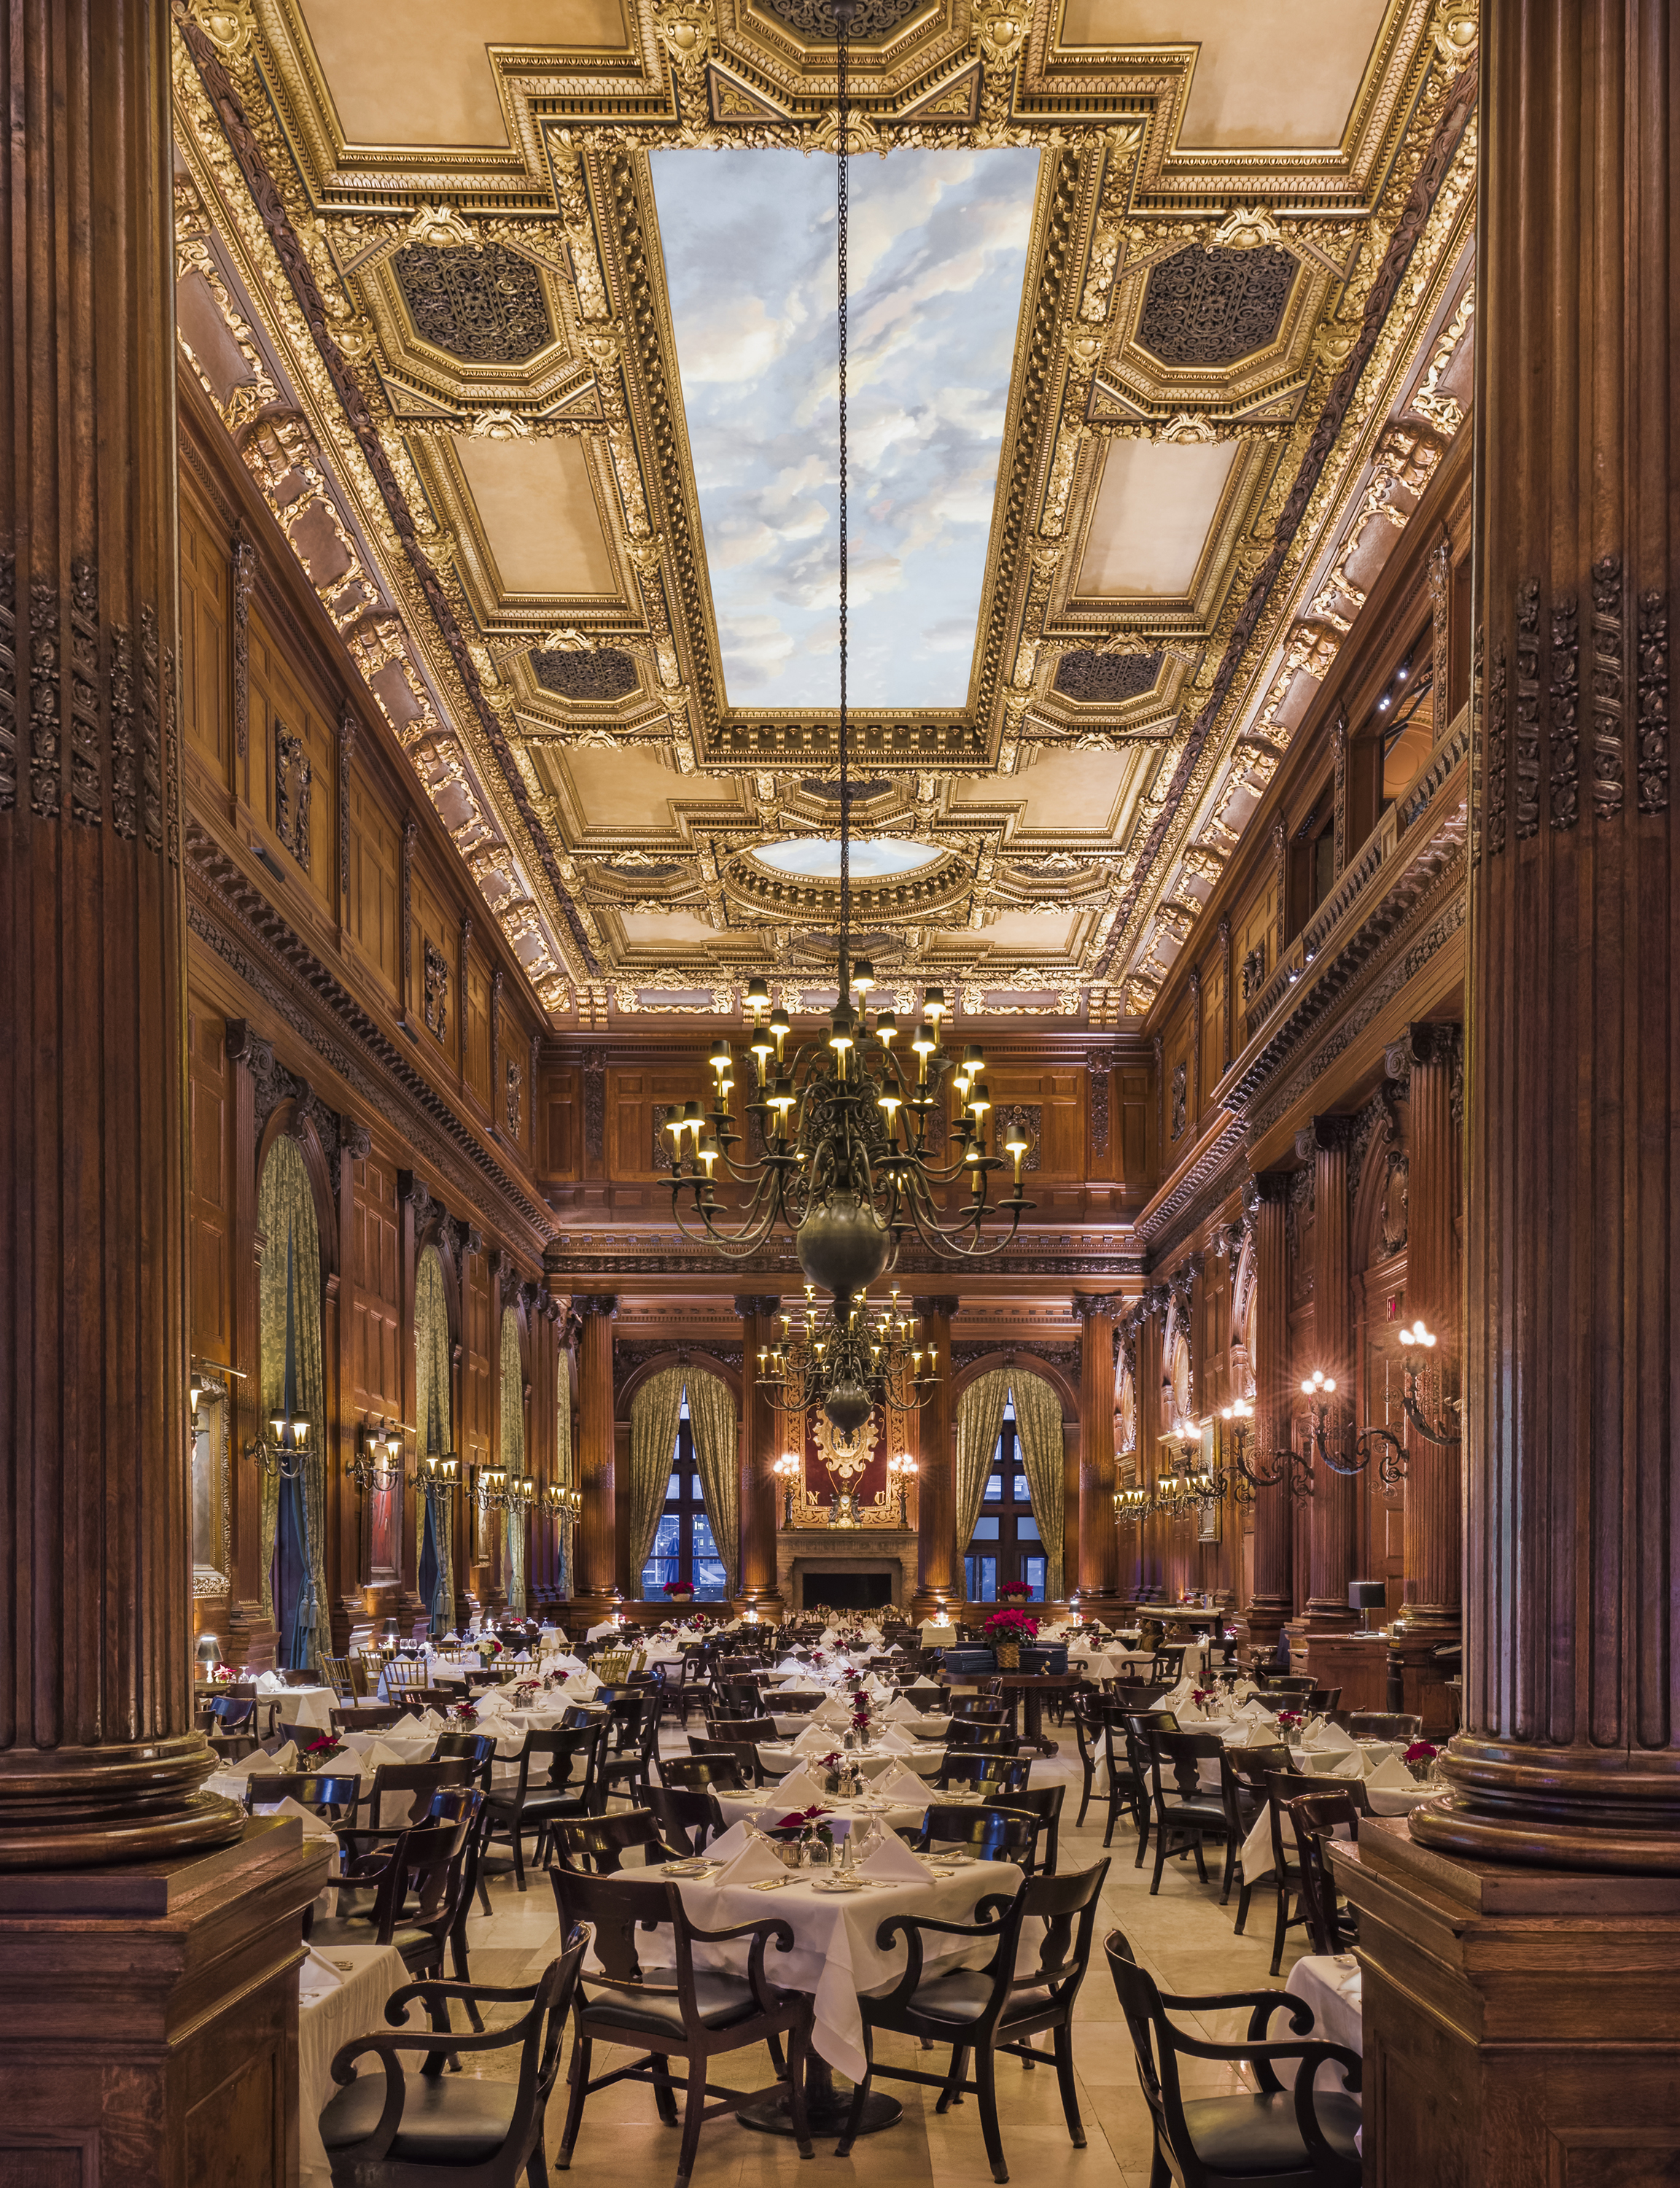 Private Club Dining Room, Location: New York, New York, Lighting